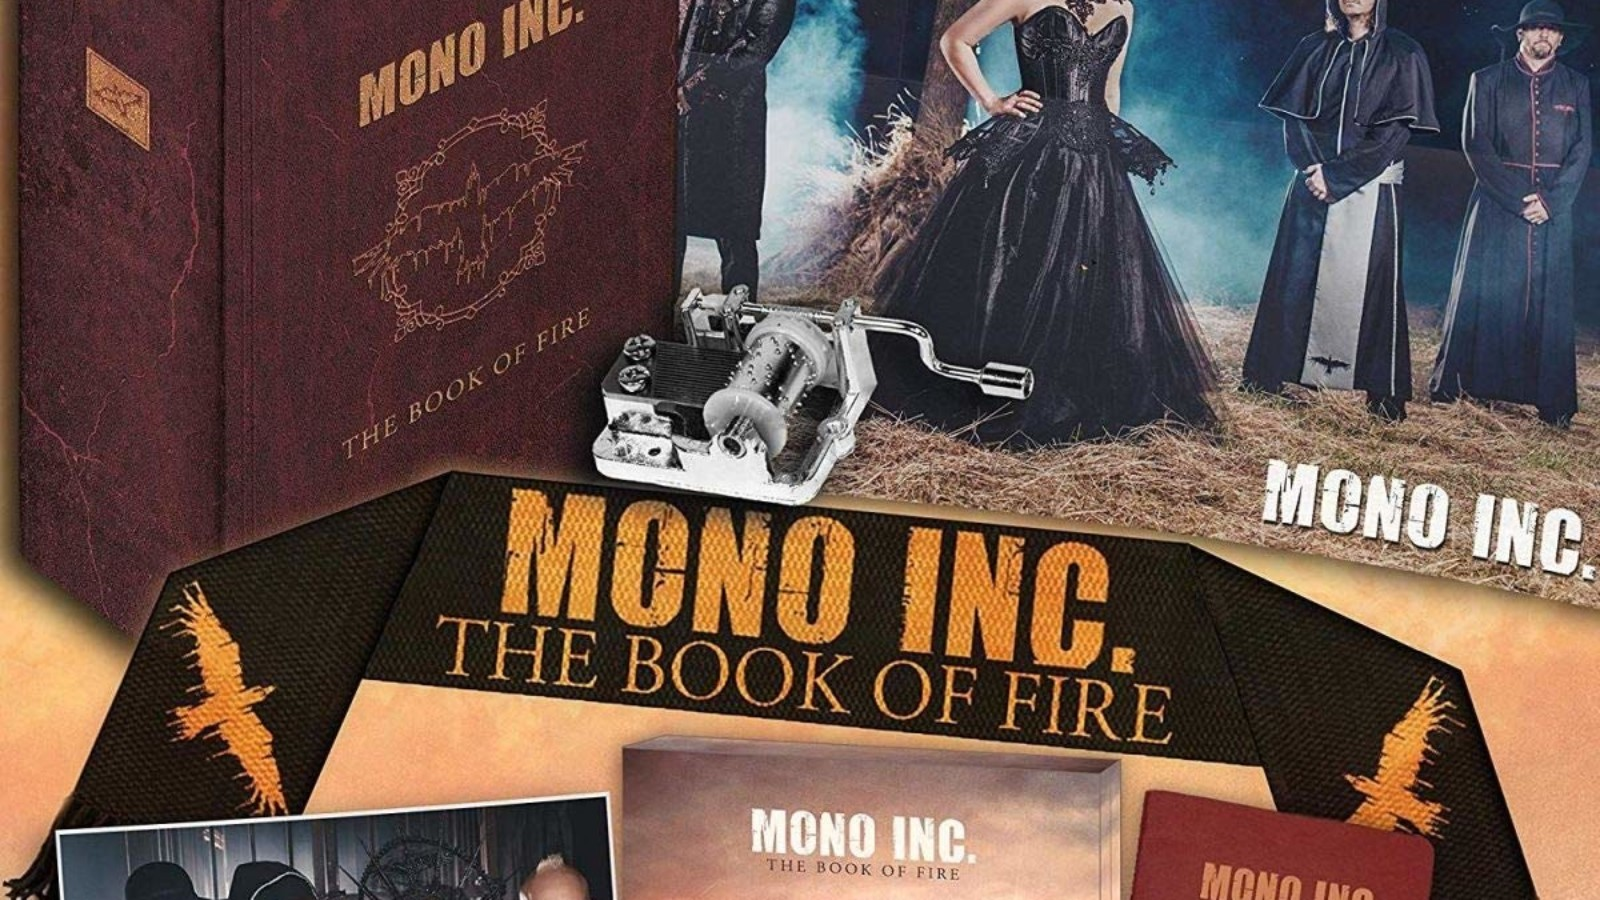 Mono Inc. – The Book of Fire